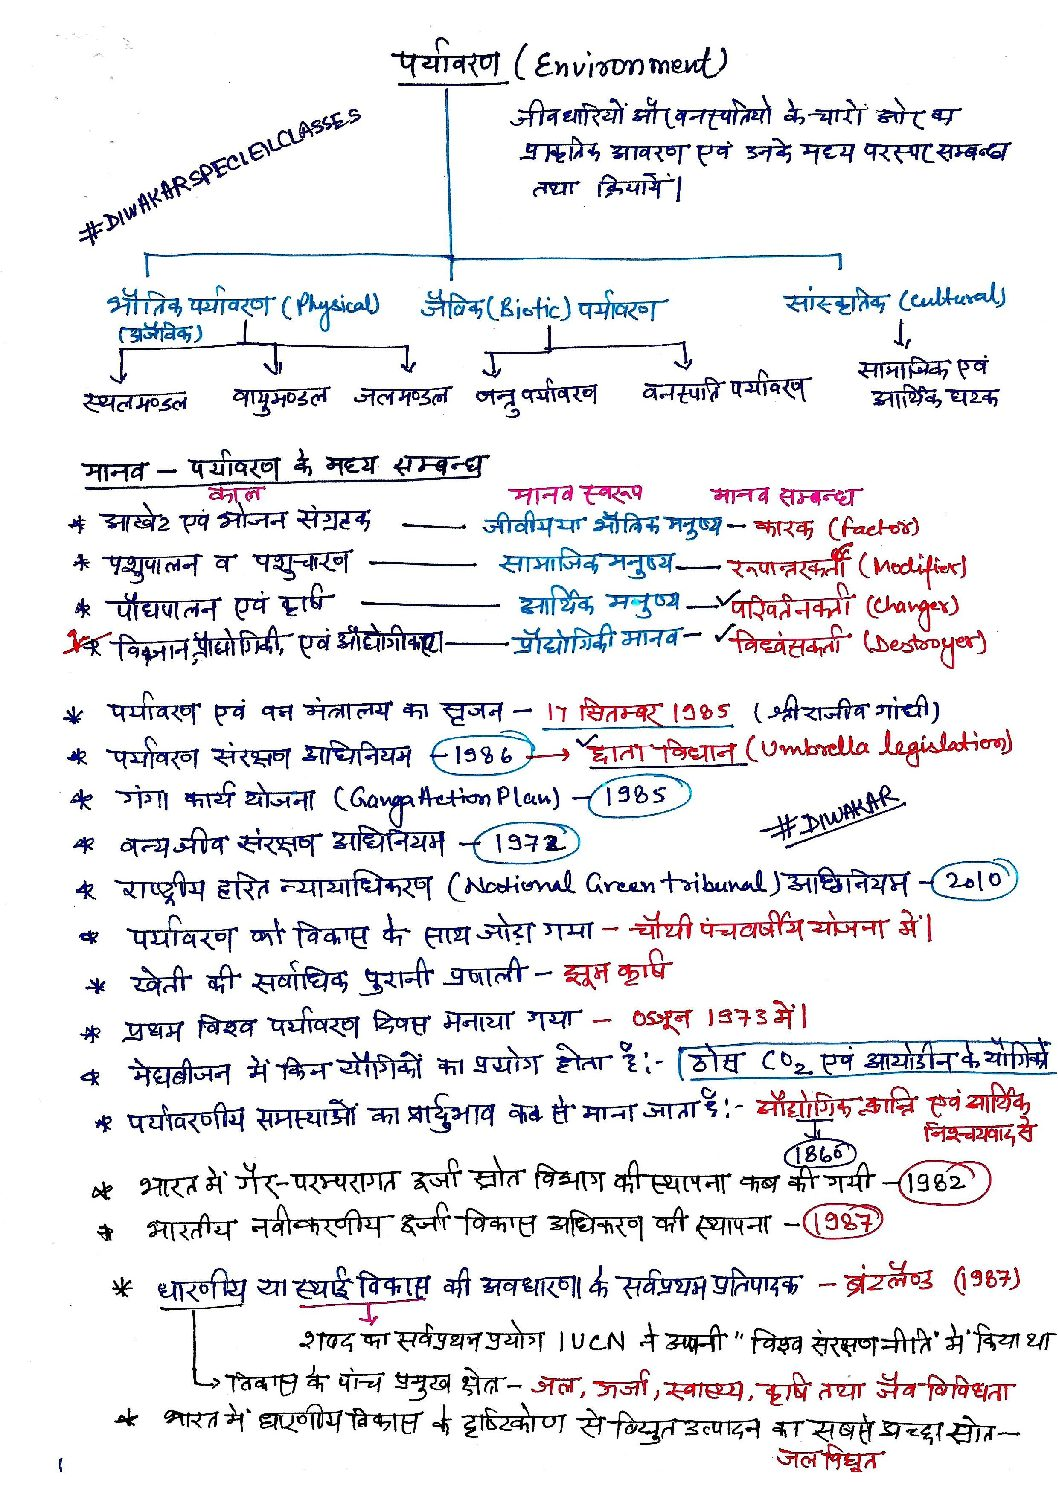 पर्यावरण (Environment Capsule) Handwritten Class Notes Download Pdf in Hindi